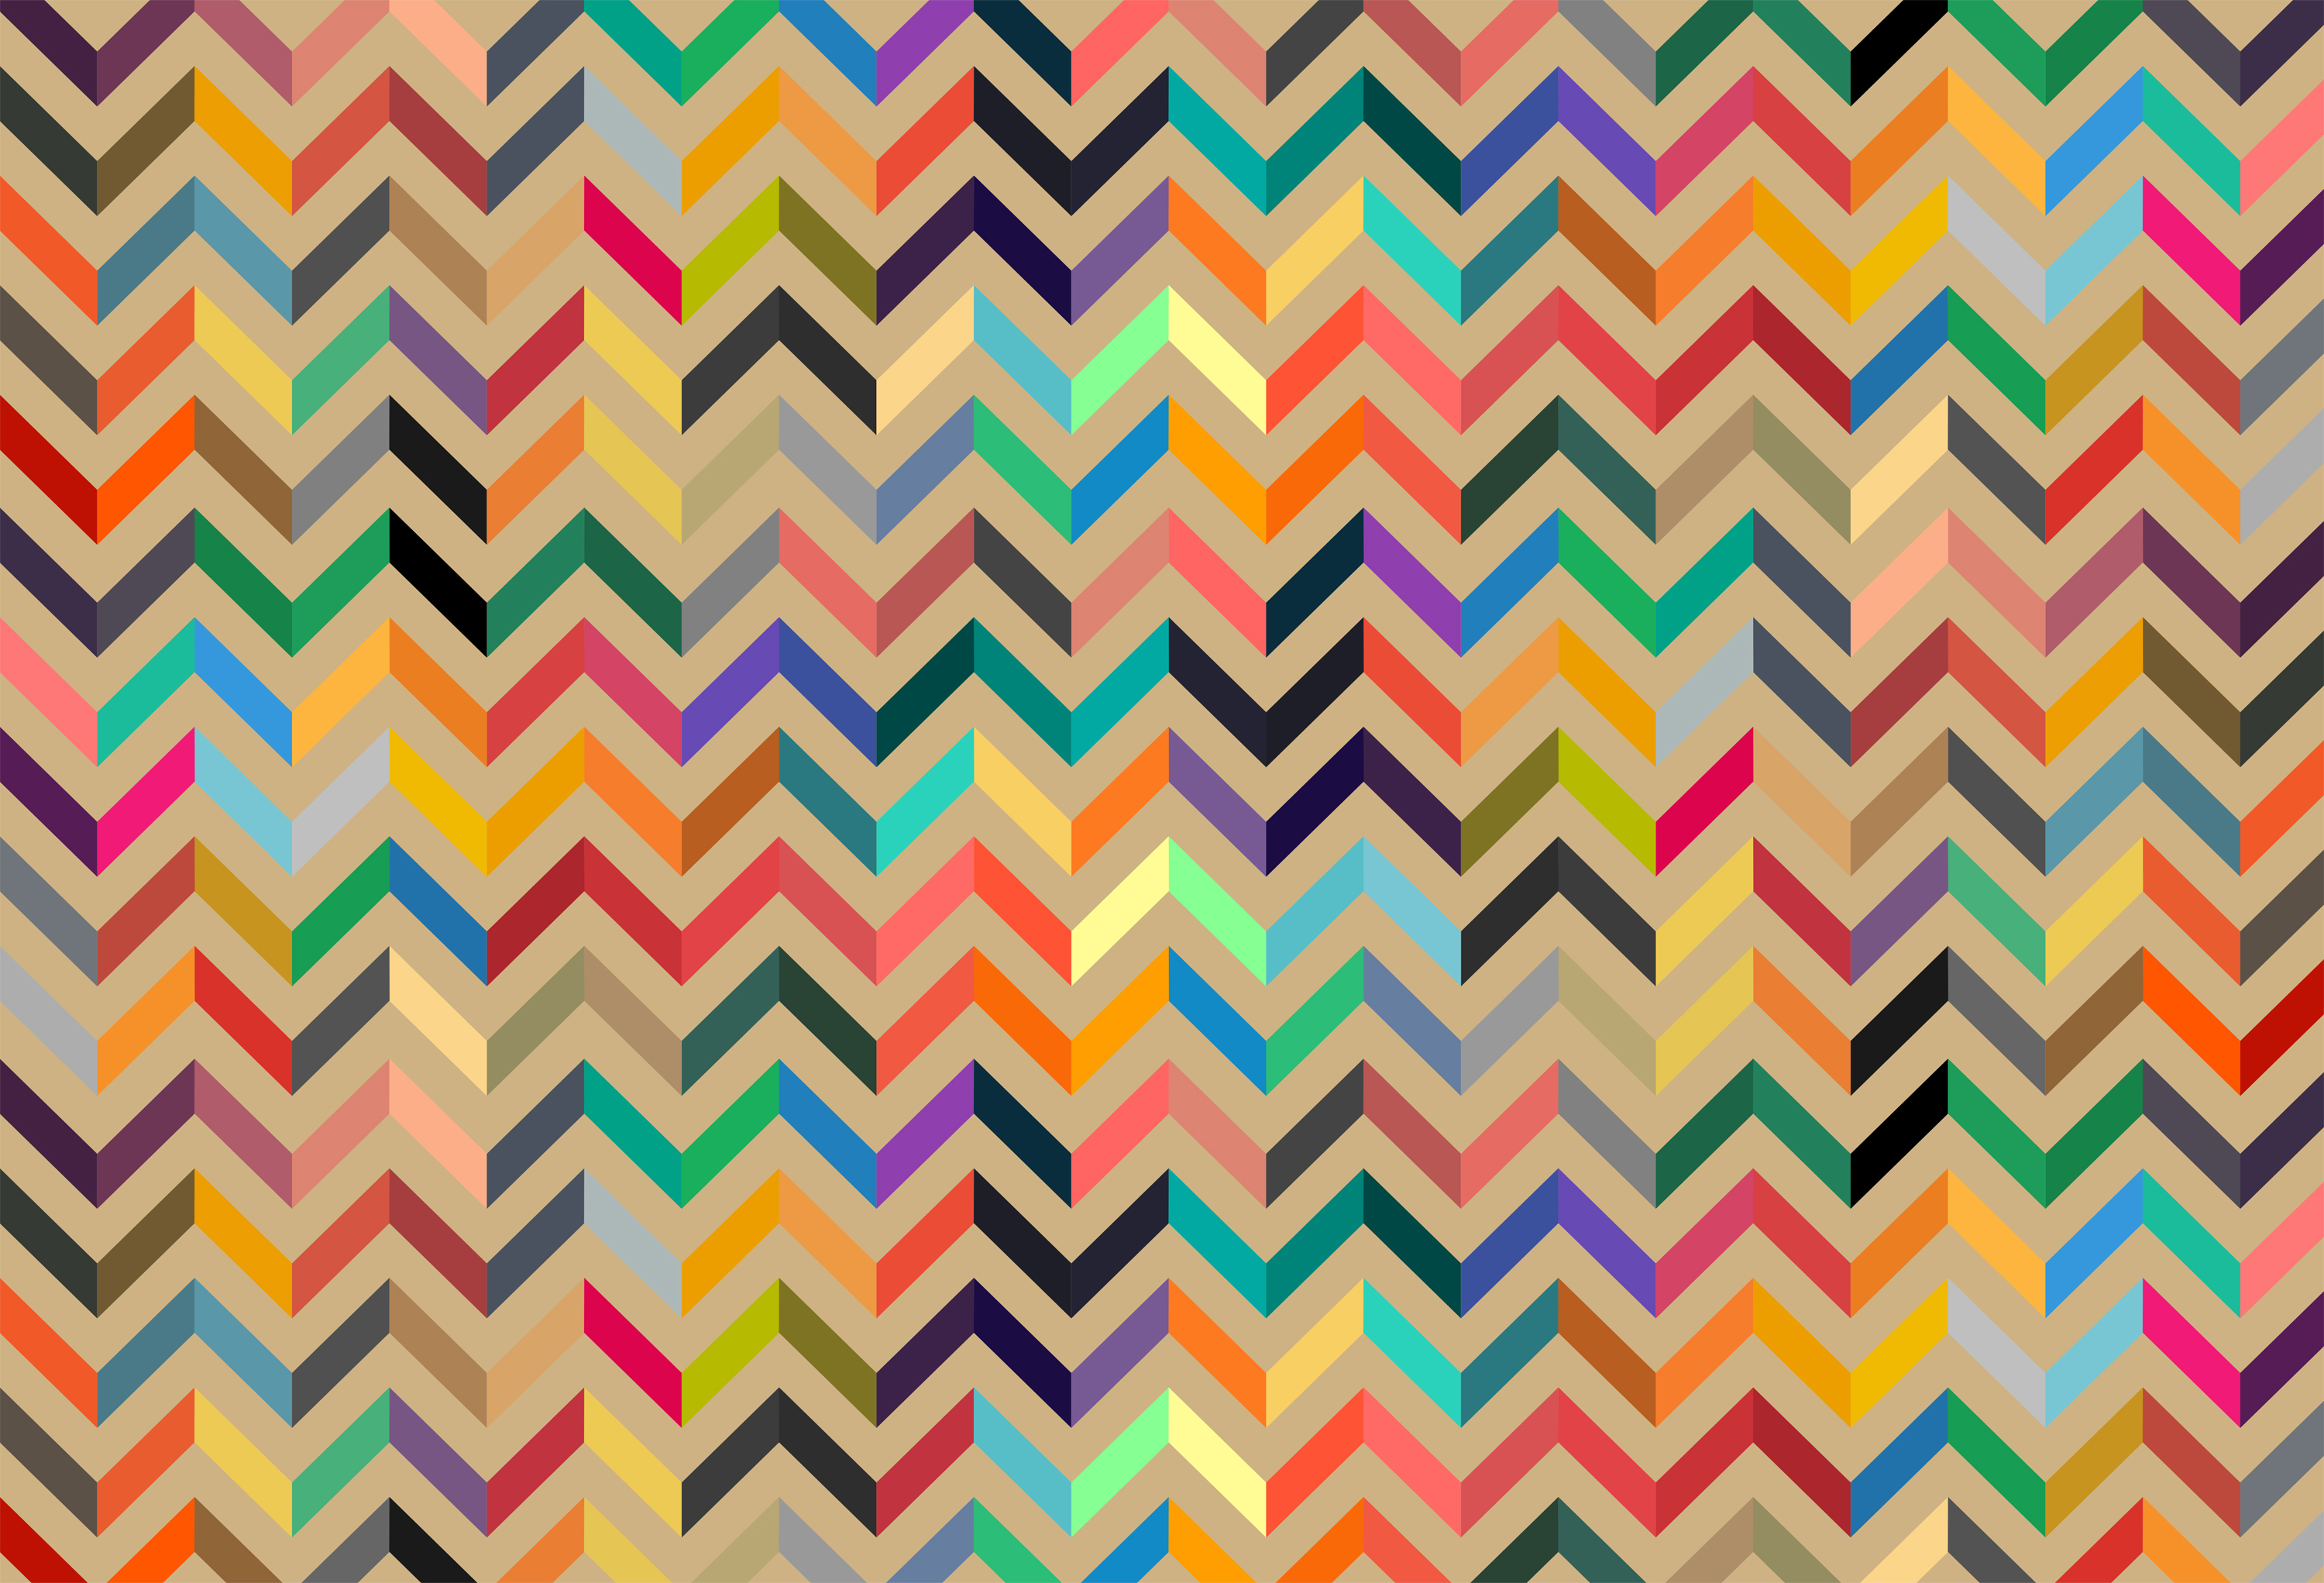 Colorful seamless pattern background - flat colors palette photo